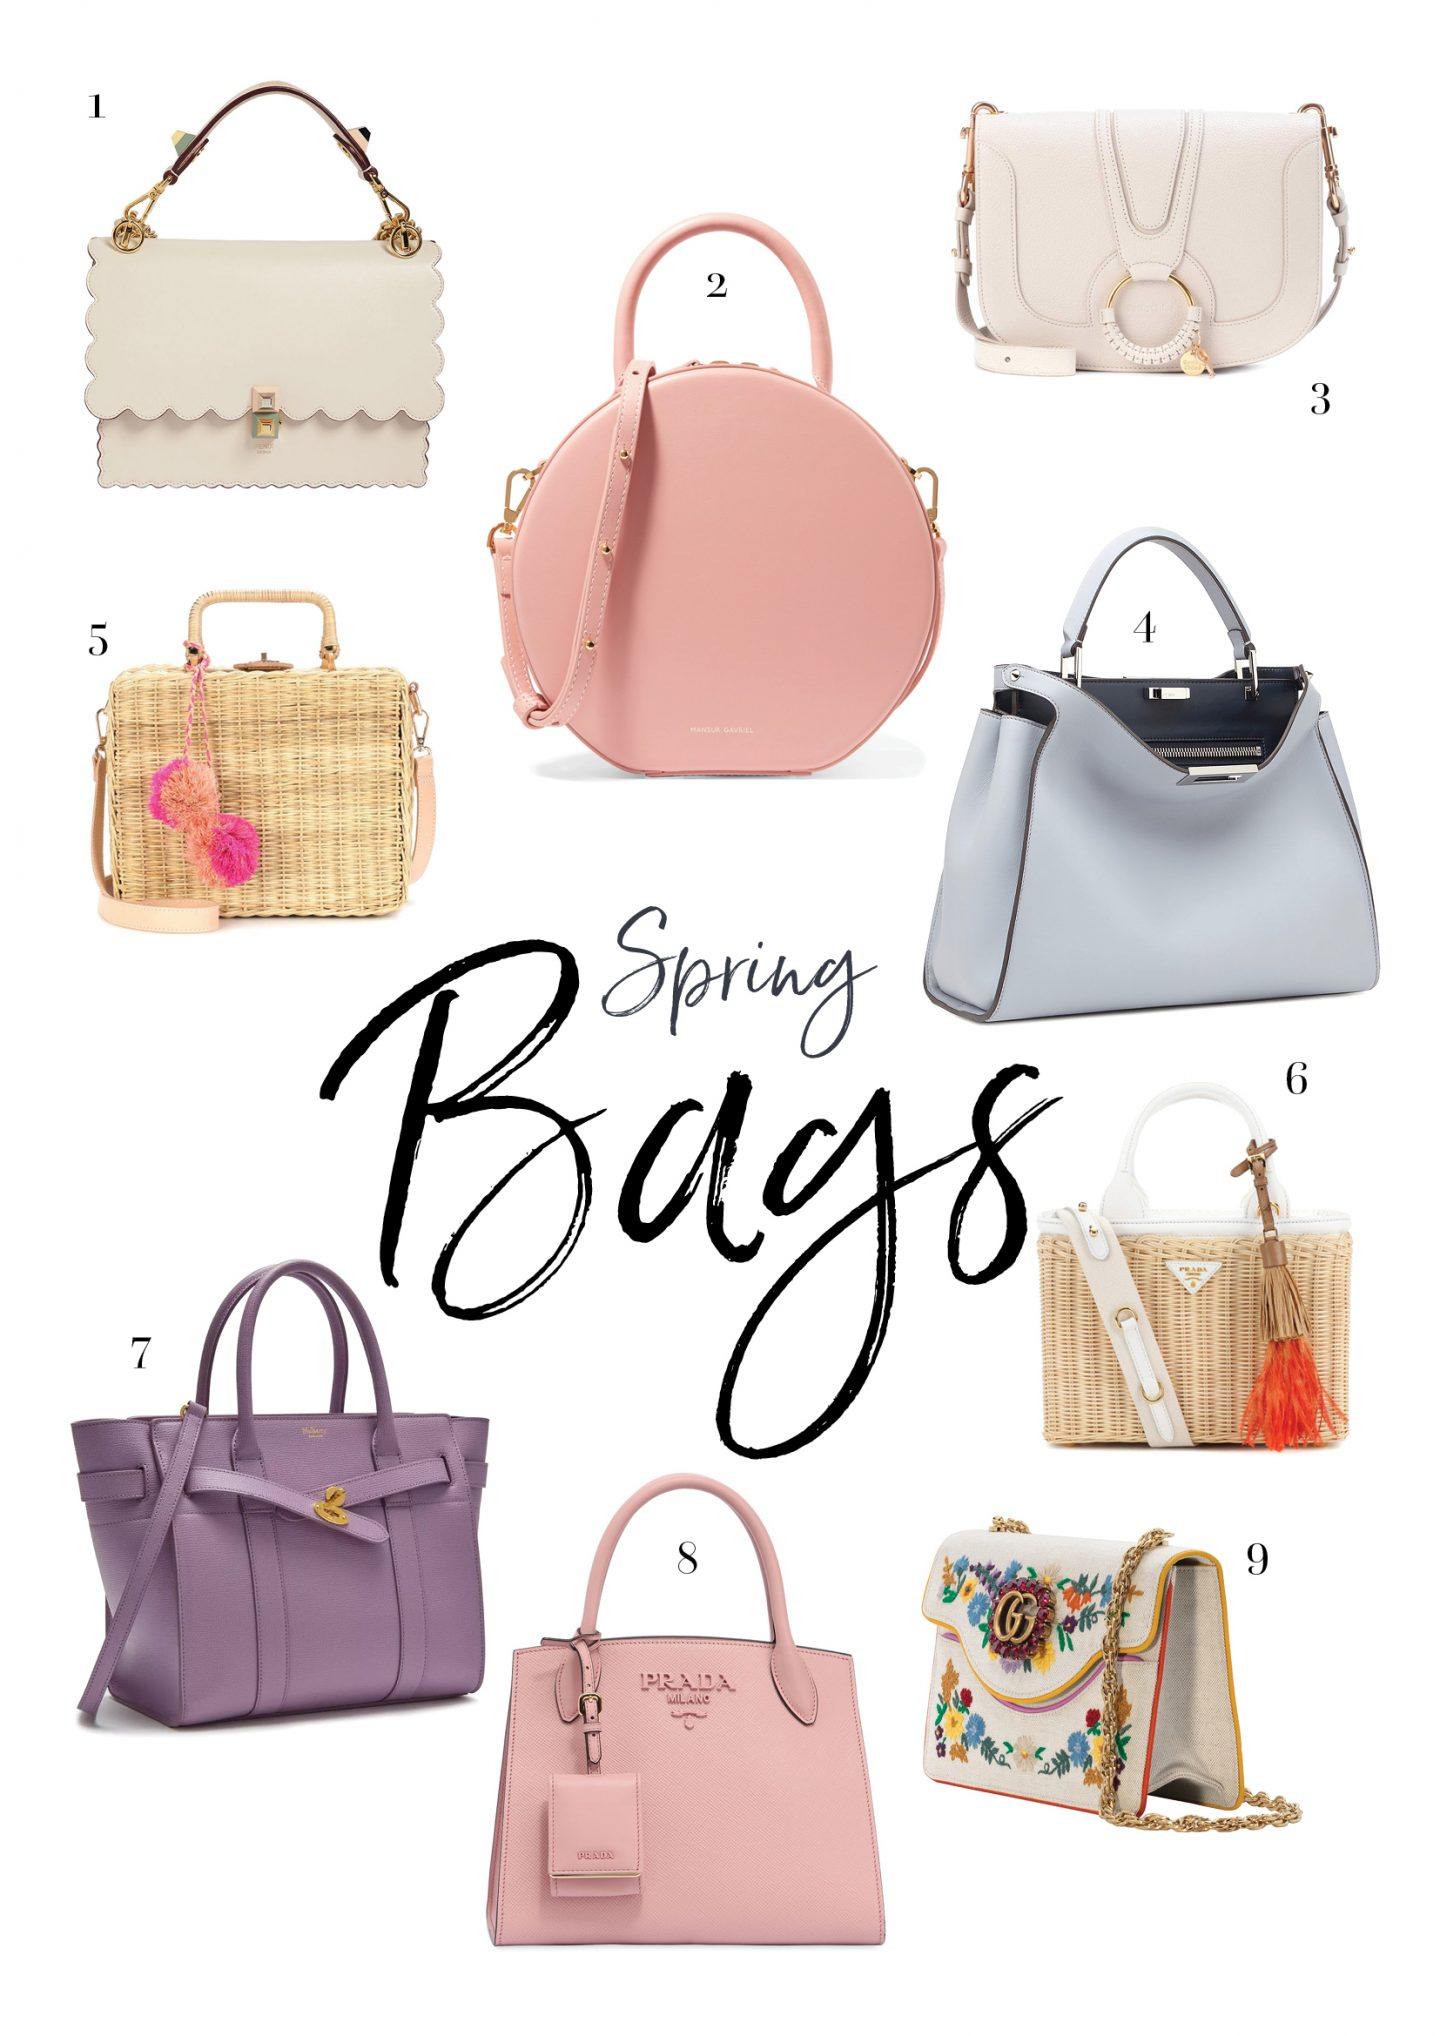 7d59b7975434 It's officially the start of a new season and what better way to celebrate  than with some gorgeous new bag inspiration? Spring is my favourite season  – even ...